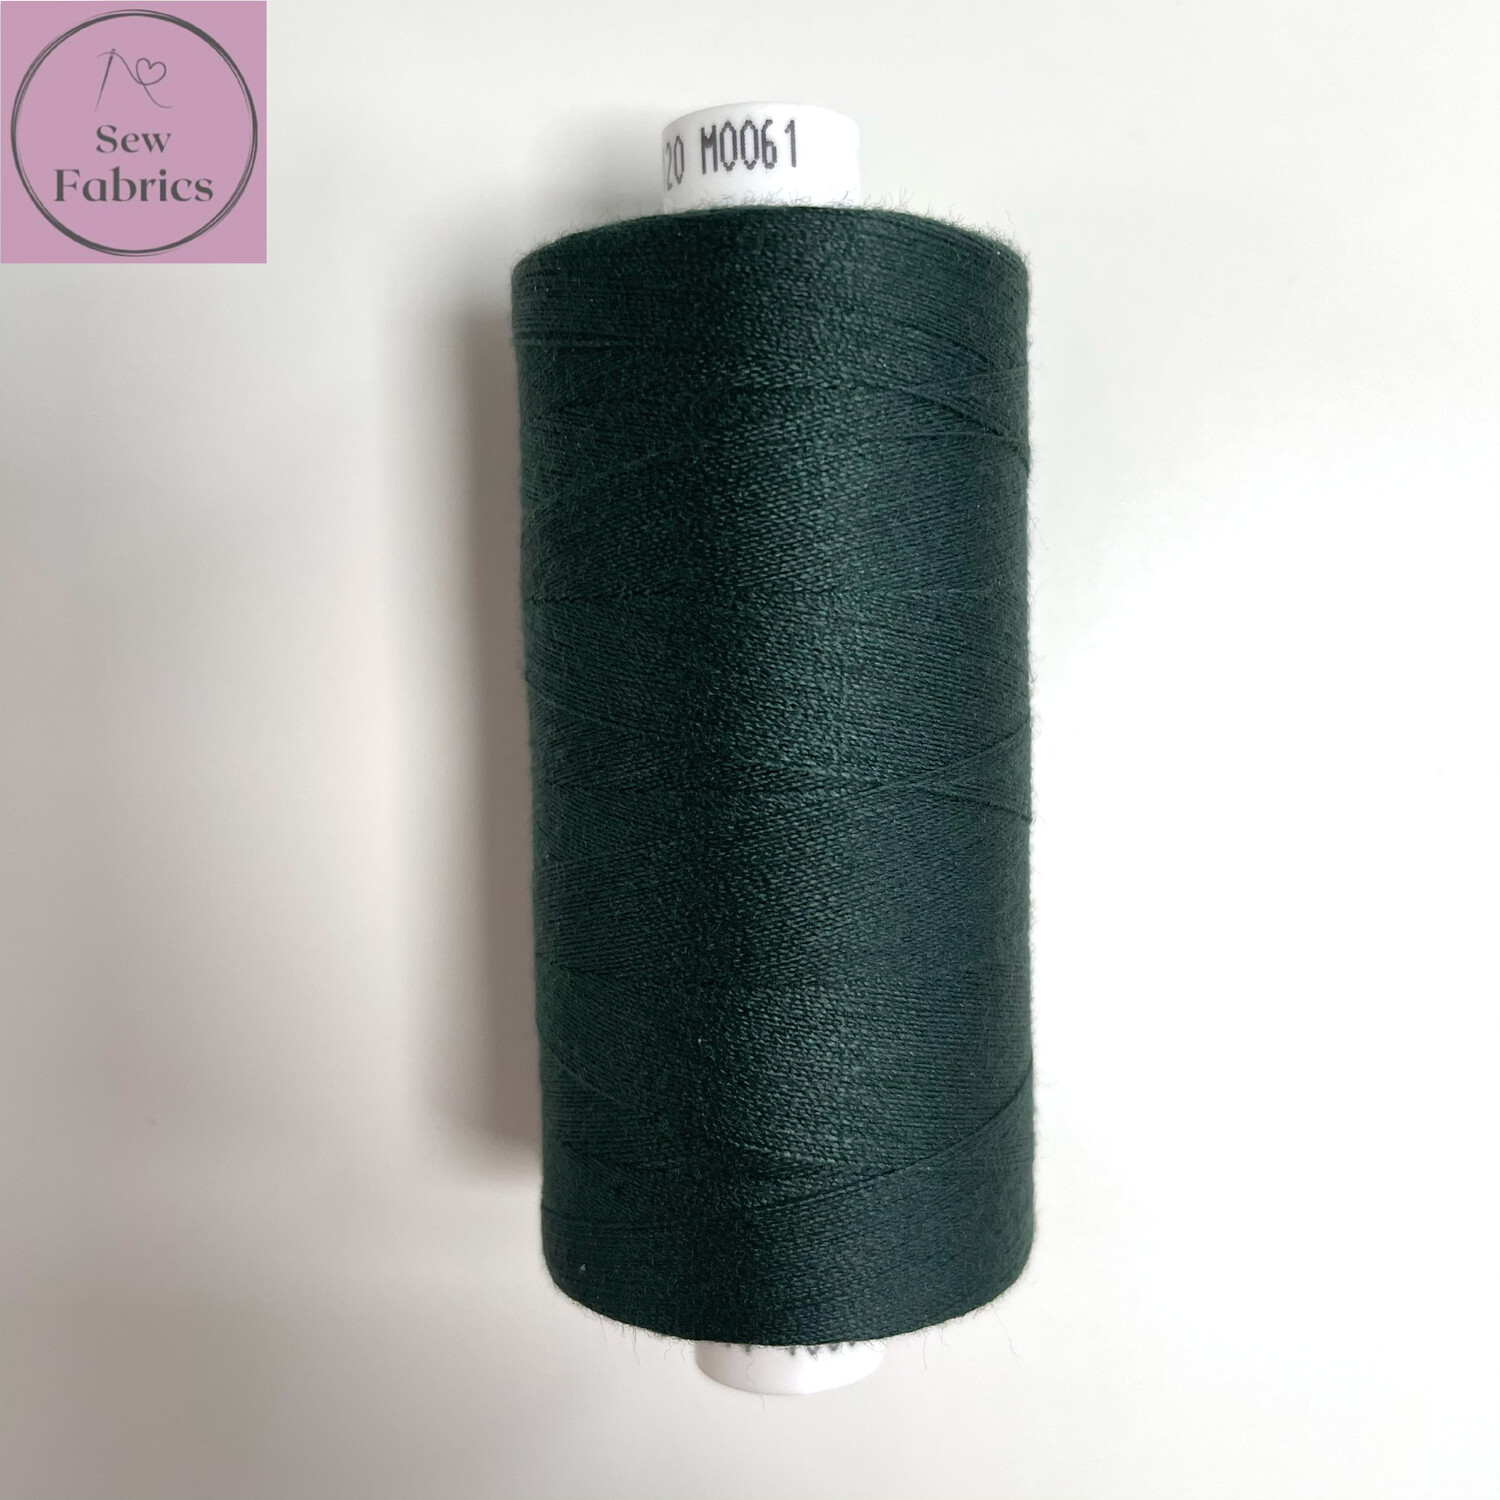 1 x 1000y Coats Moon Thread - Dark Green M061